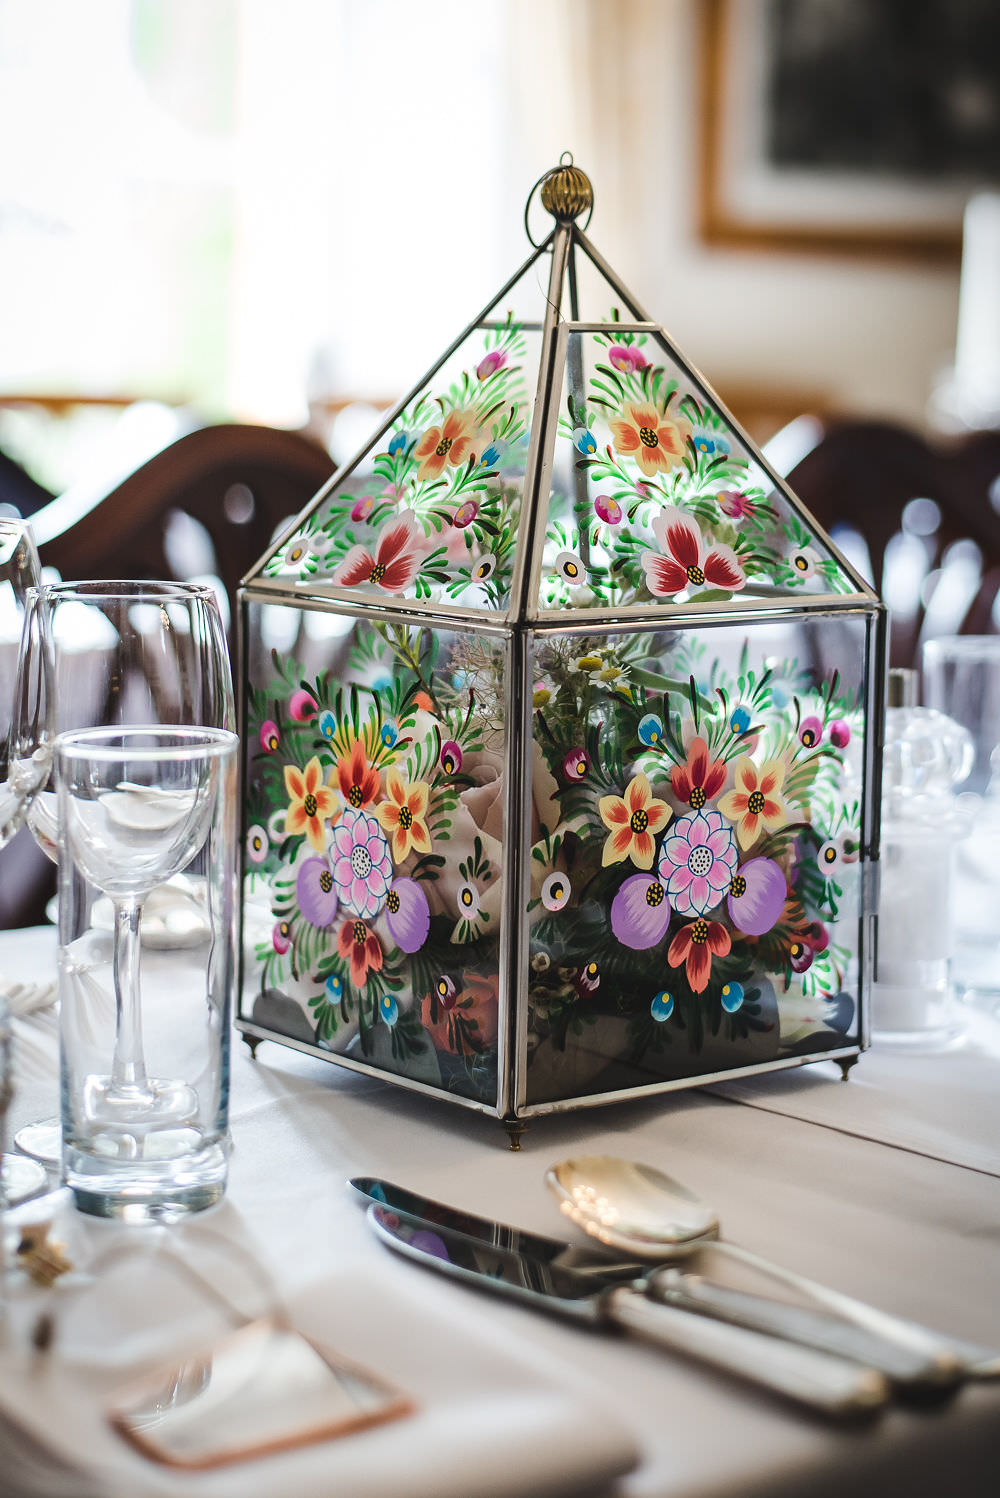 Hand Painted Terrarium Table Centre Flowers Floral Langar Hall Wedding Robert Leons Photography